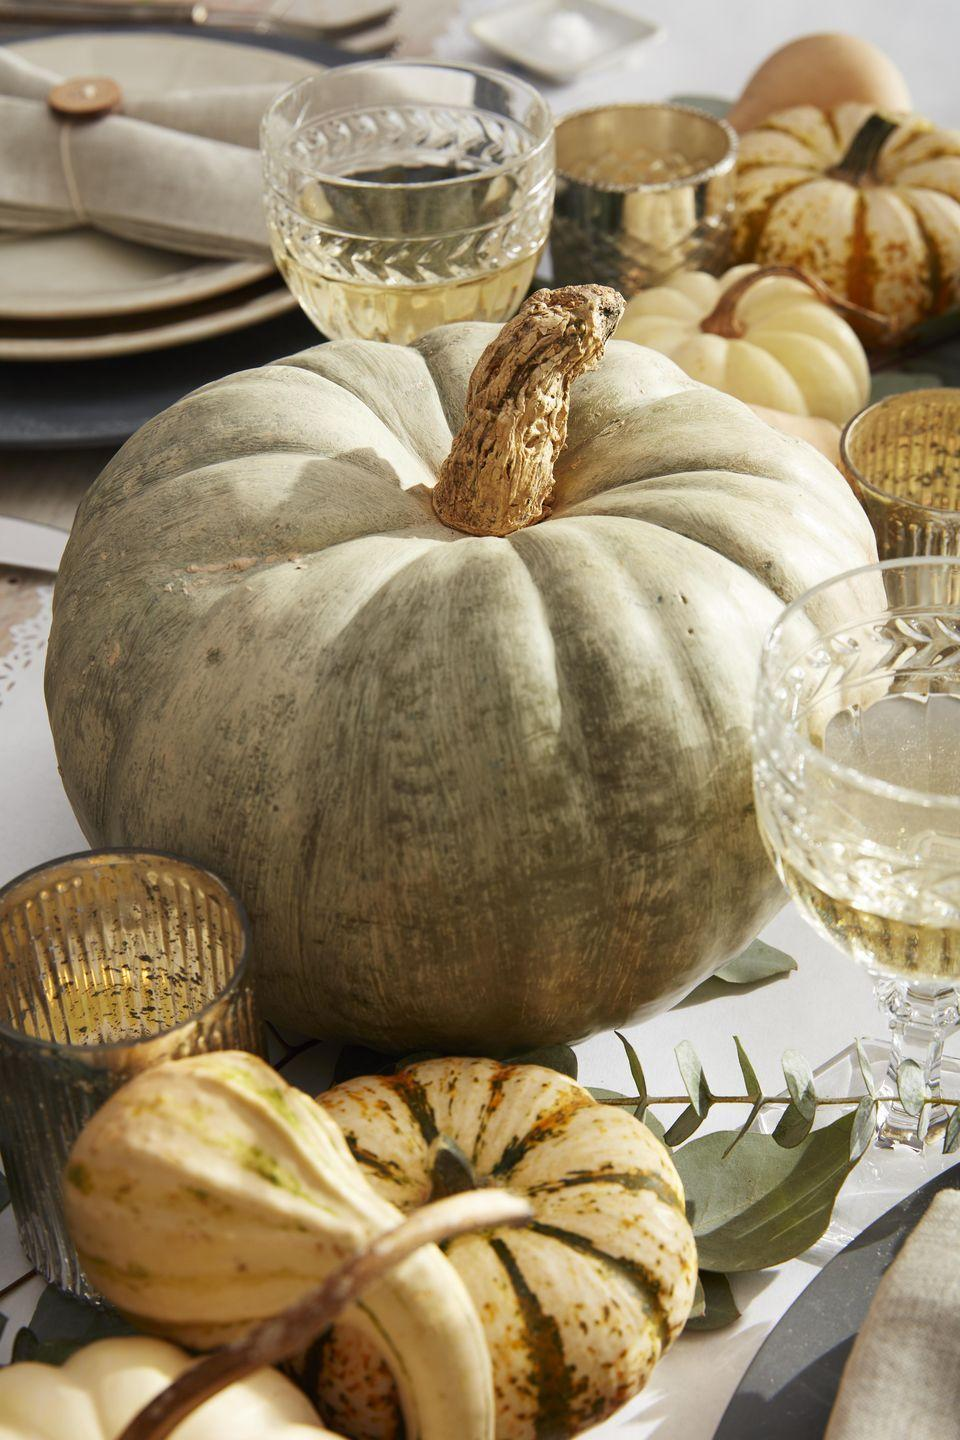 """<p>Five minutes and done! Paint a green or tan heirloom pumpkin with off-white acrylic paint and voila. Sophistication!</p><p><a class=""""link rapid-noclick-resp"""" href=""""https://www.amazon.com/Delta-Creative-Ceramcoat-Acrylic-Assorted/dp/B00A2CHV76/ref=sr_1_1?tag=syn-yahoo-20&ascsubtag=%5Bartid%7C10050.g.1371%5Bsrc%7Cyahoo-us"""" rel=""""nofollow noopener"""" target=""""_blank"""" data-ylk=""""slk:SHOP PAINT"""">SHOP PAINT</a><br></p>"""